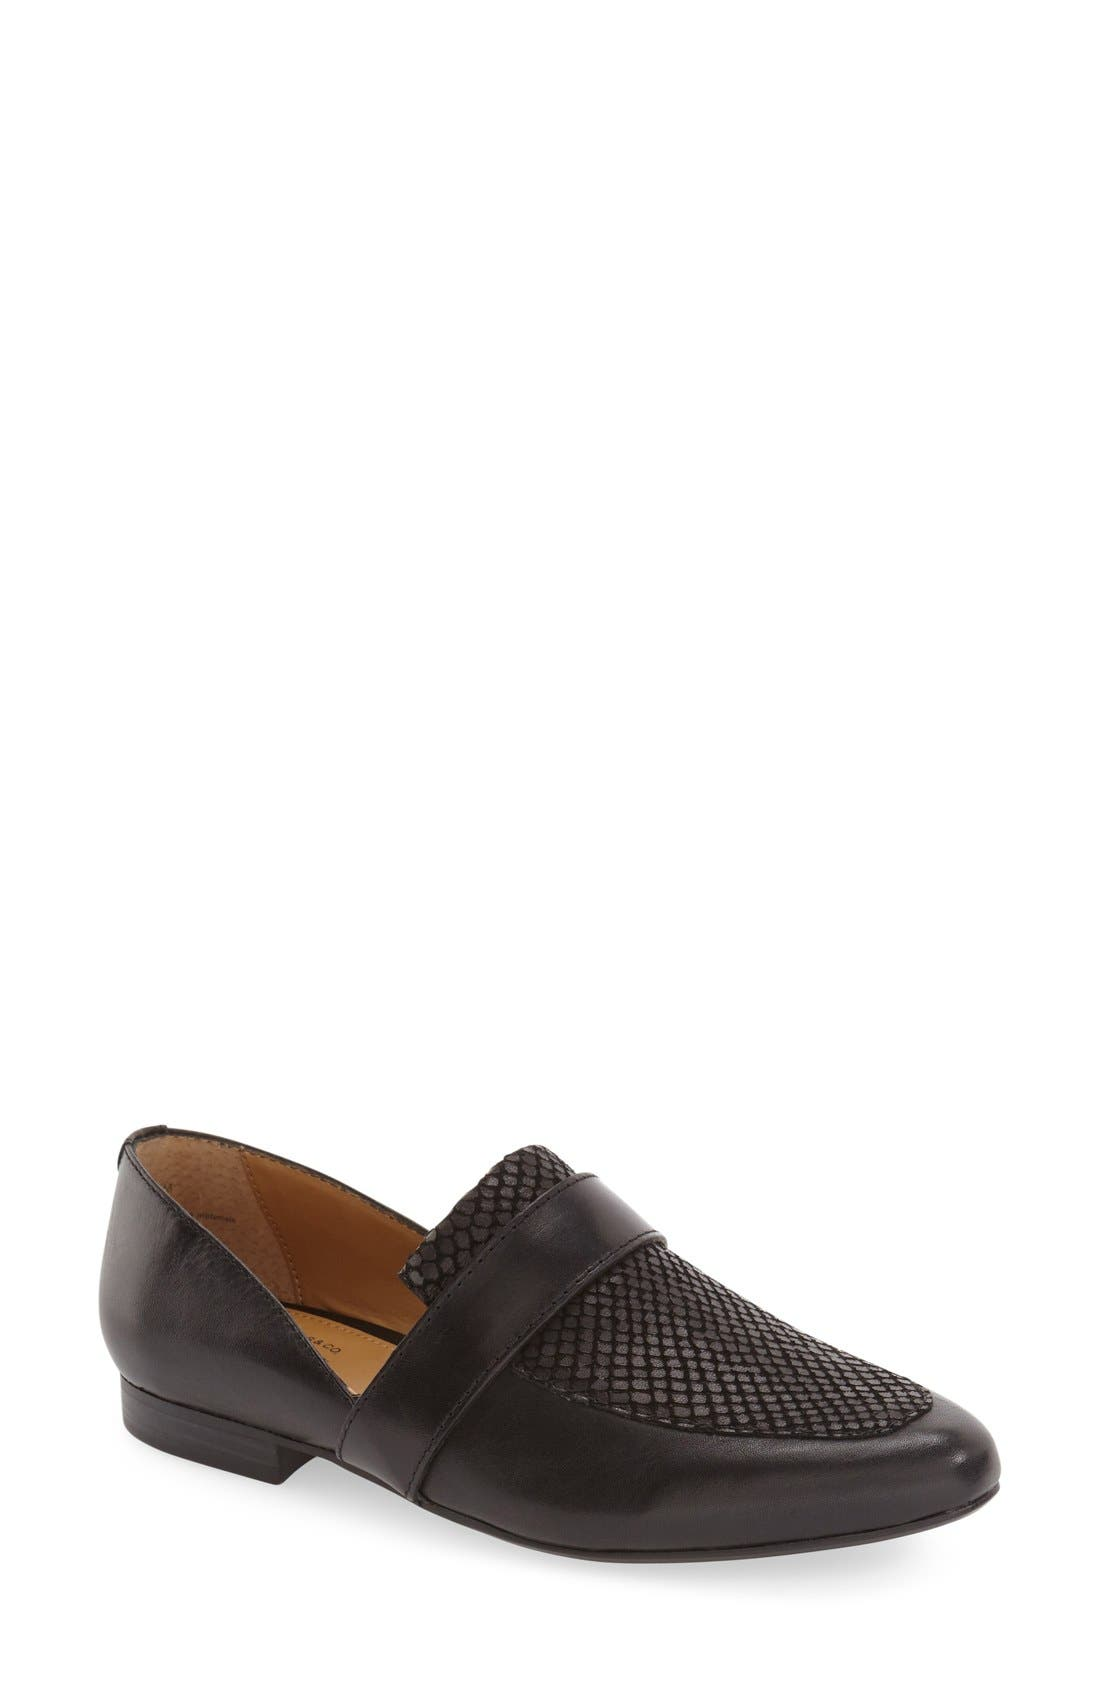 'Hilary' Leather Loafer,                             Main thumbnail 1, color,                             Black Leather